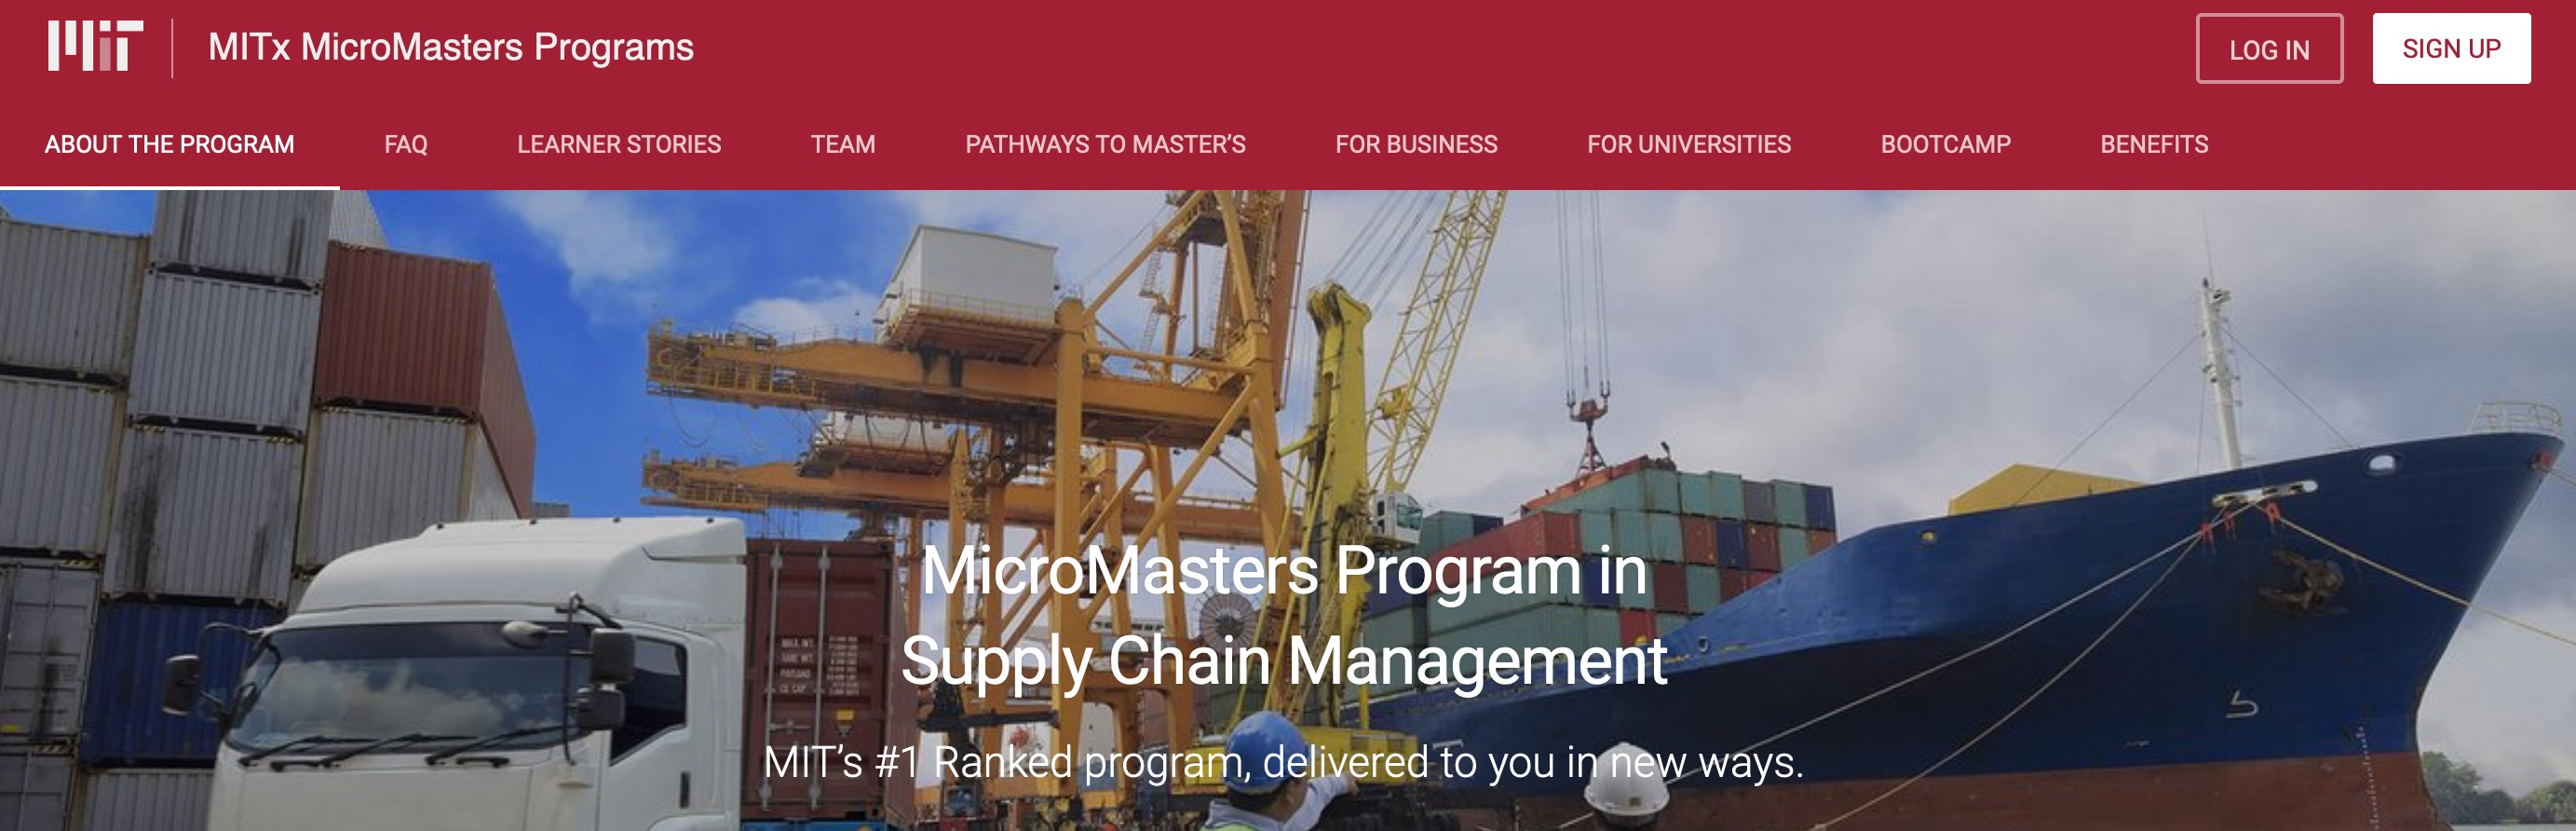 MicroMasters Program in Supply Chain Management MIT's #1 Ranked program, delivered to you in new ways.